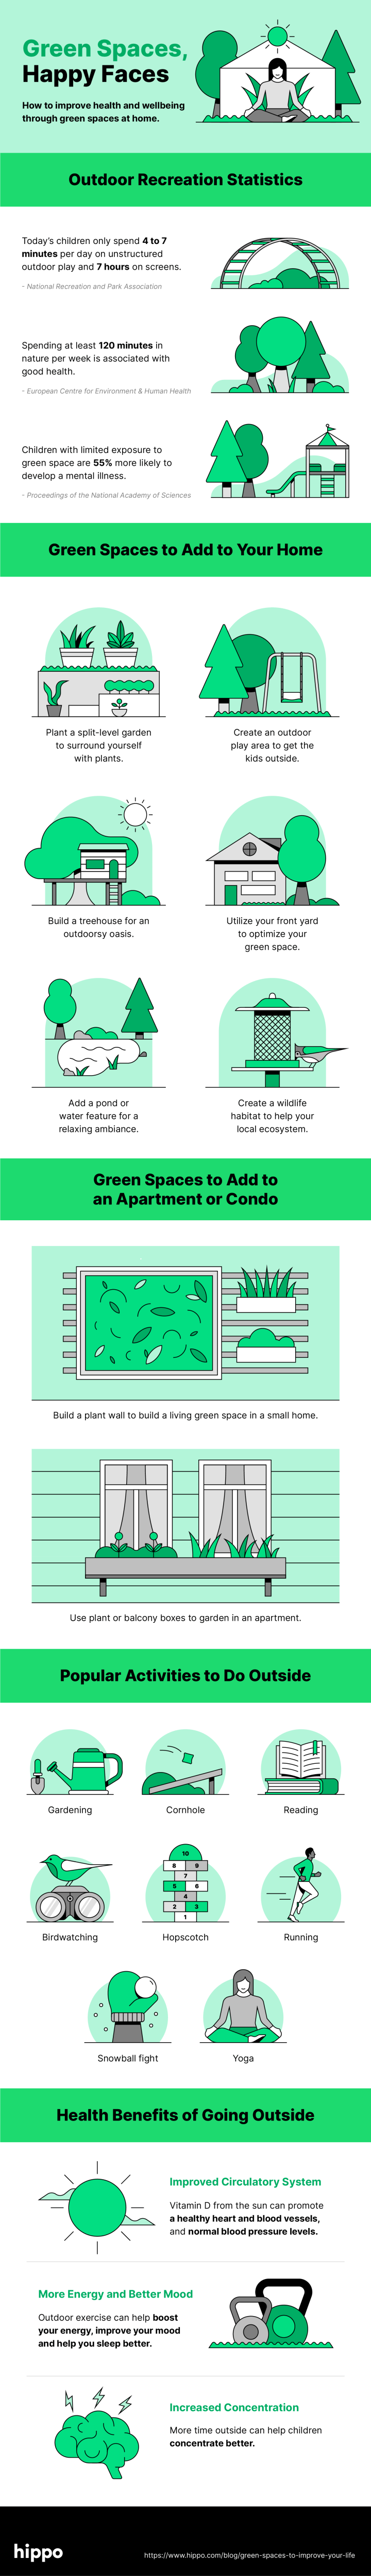 green spaces to improve your life